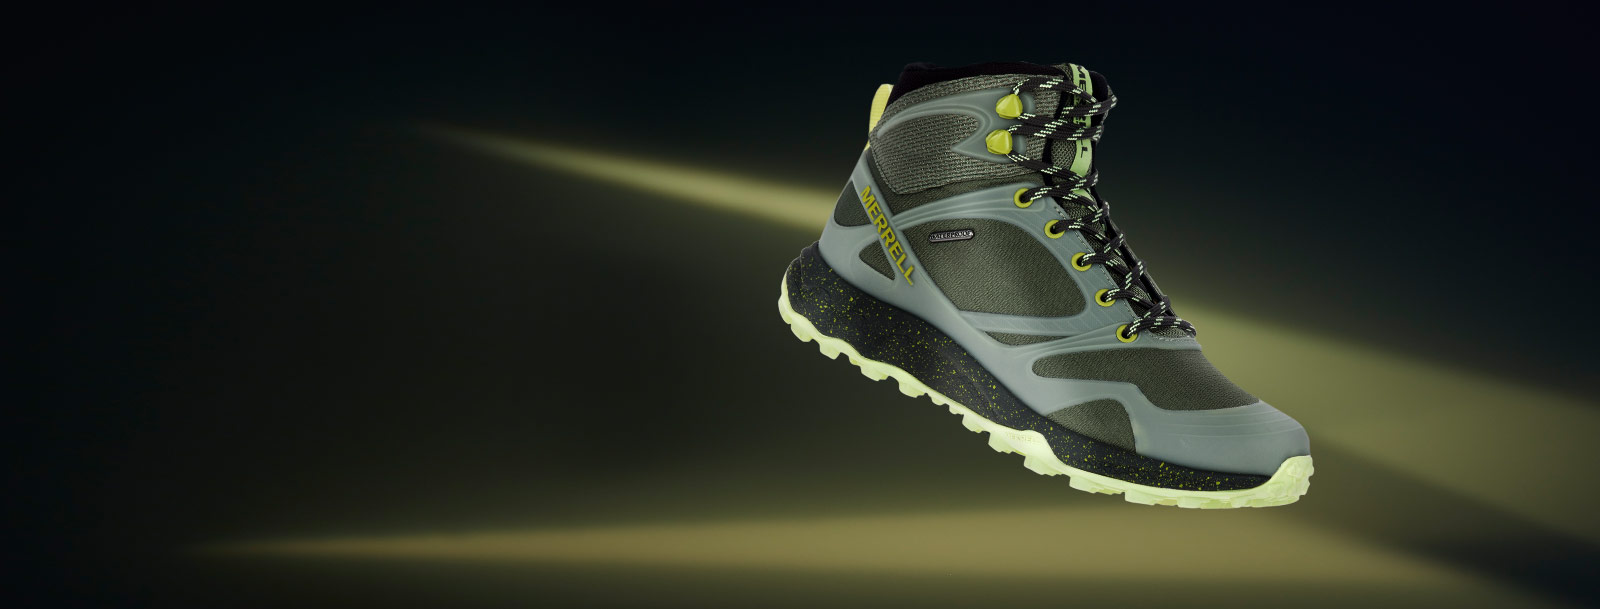 Merrell Altalight shoe over a blurred purple background